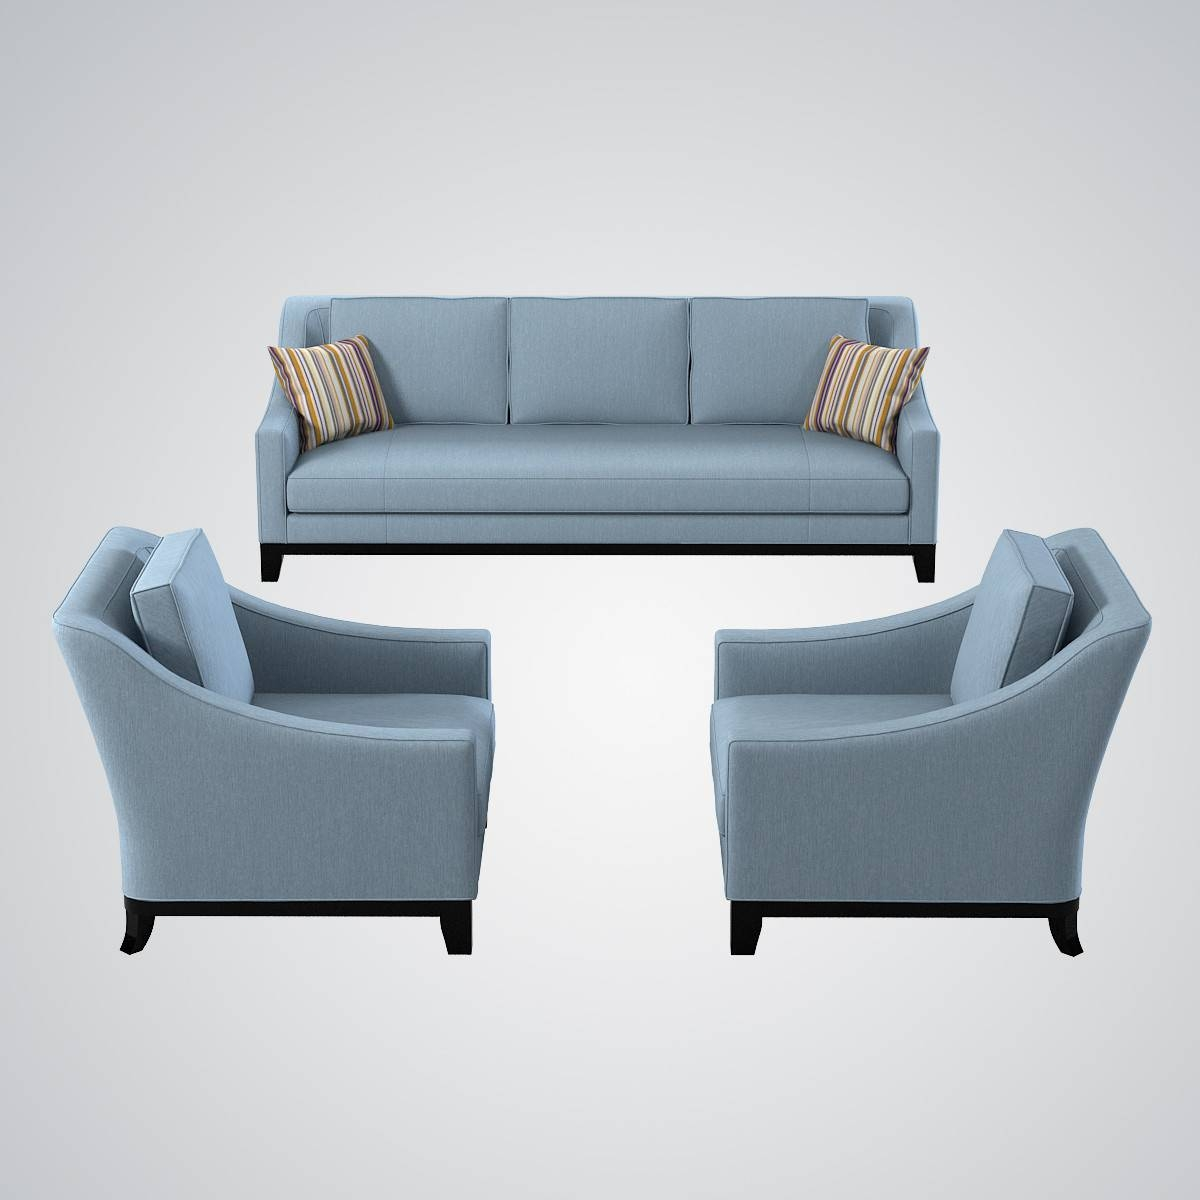 Model Baker Neue Sofa Chair For Sofa And Chair Set (View 23 of 30)